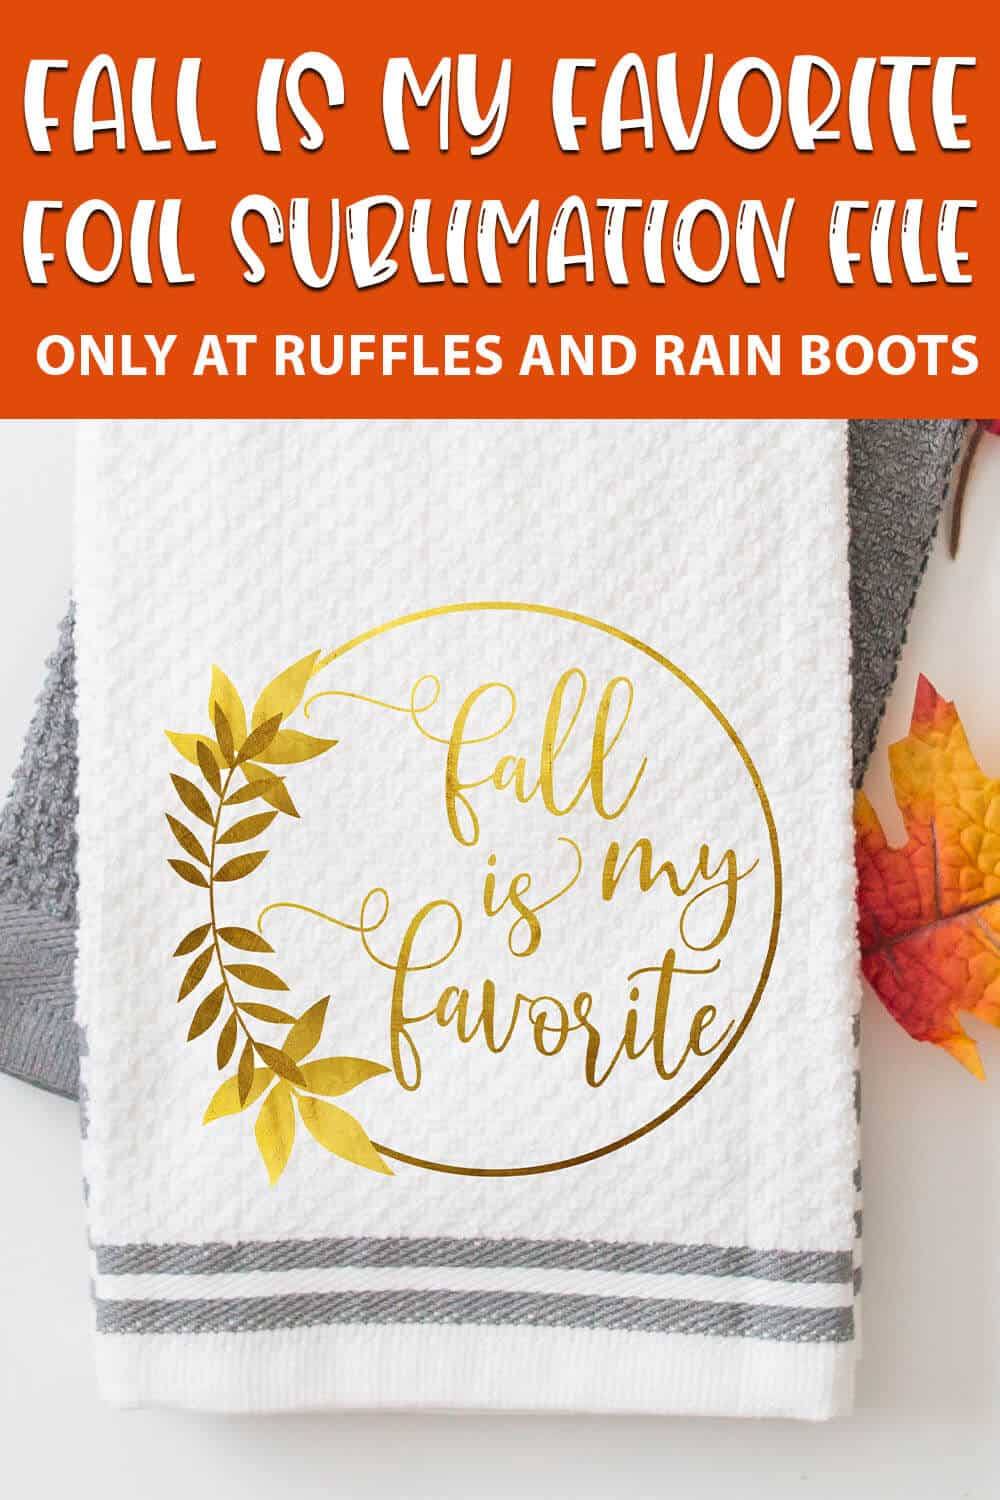 foil fall sublimation file with text which reads Fall is My Favorite Foil Sublimation file file